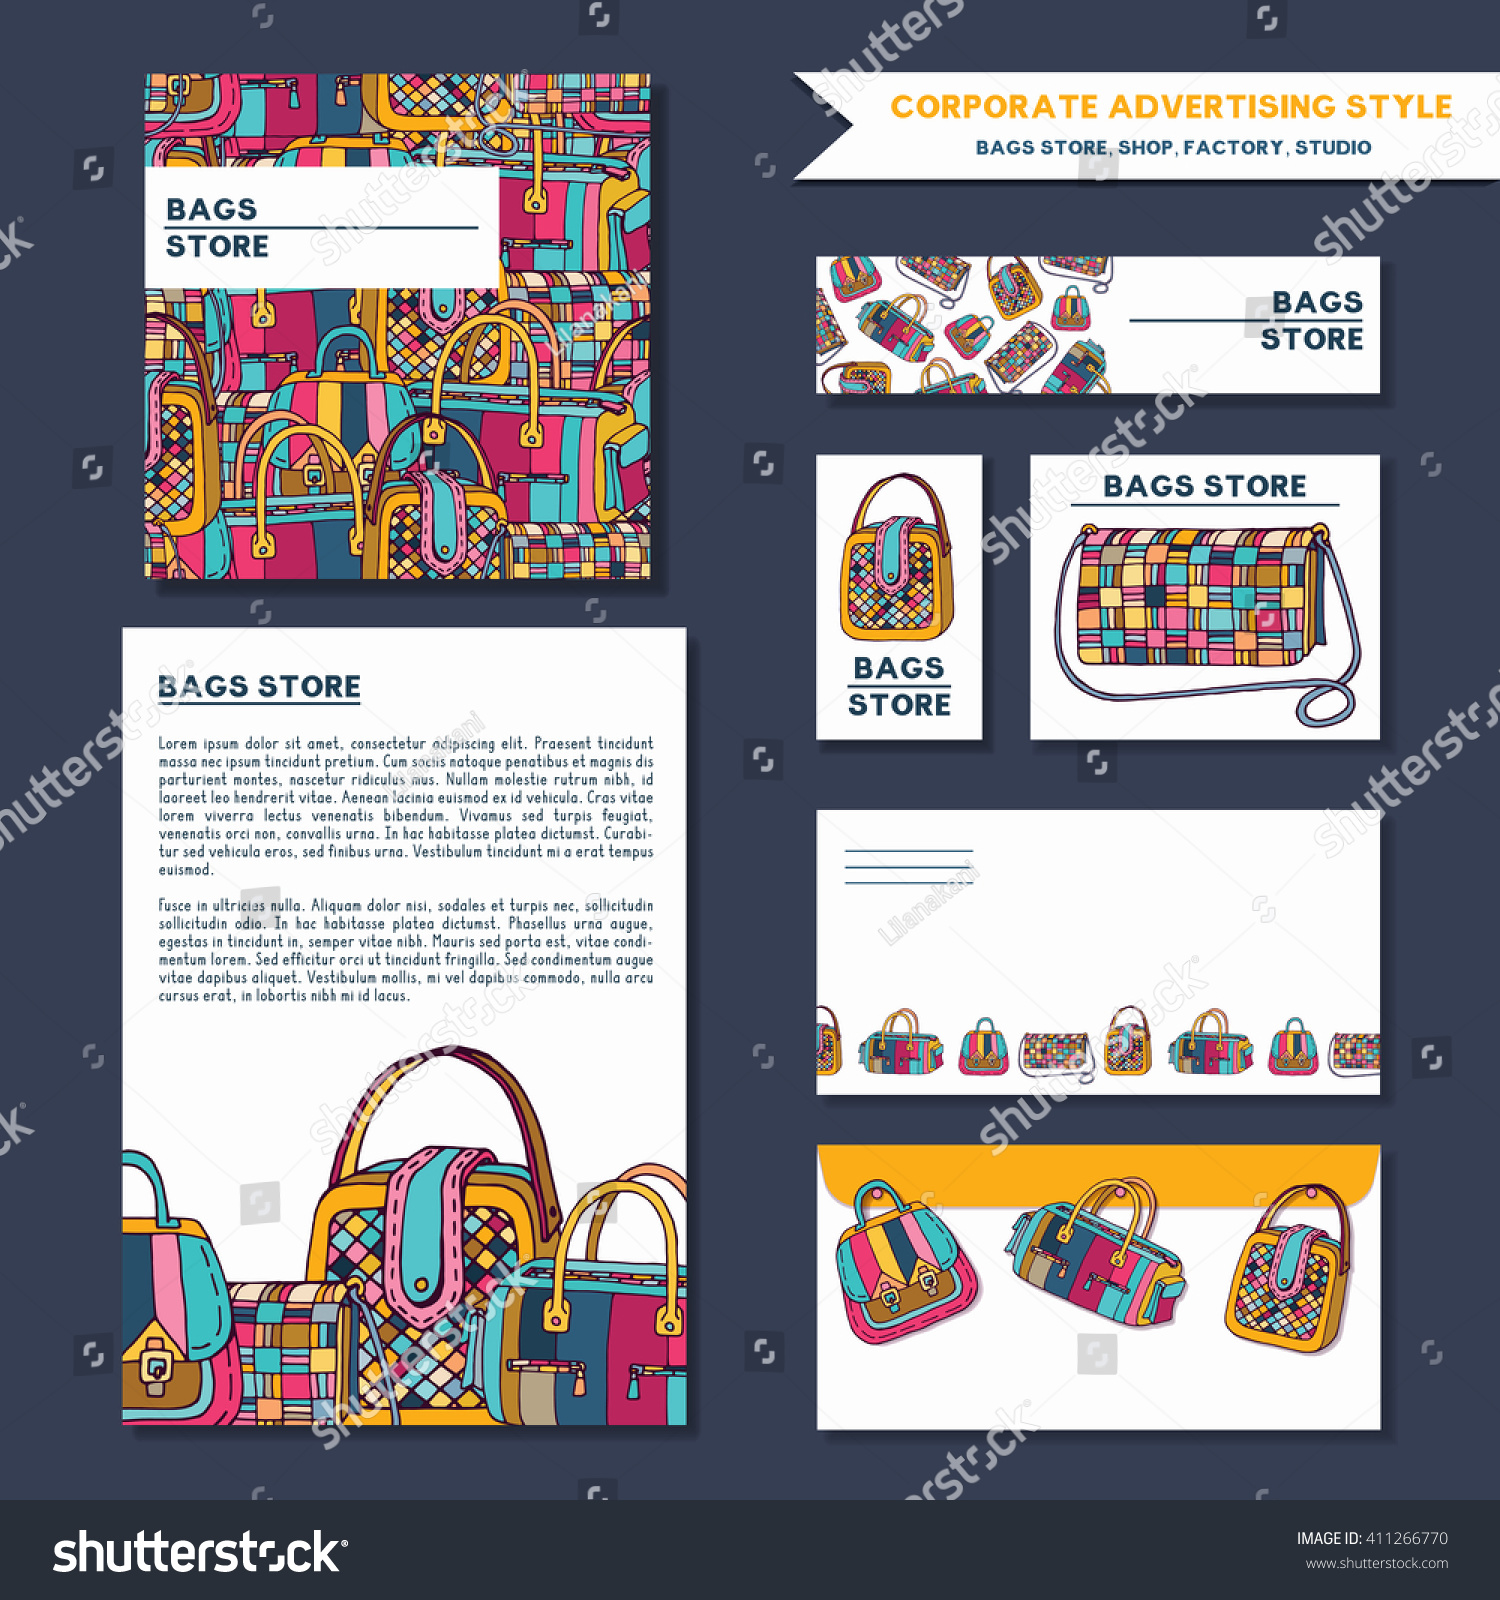 Corporate Advertising Brand Style Fashion Bags Stock Vector Royalty